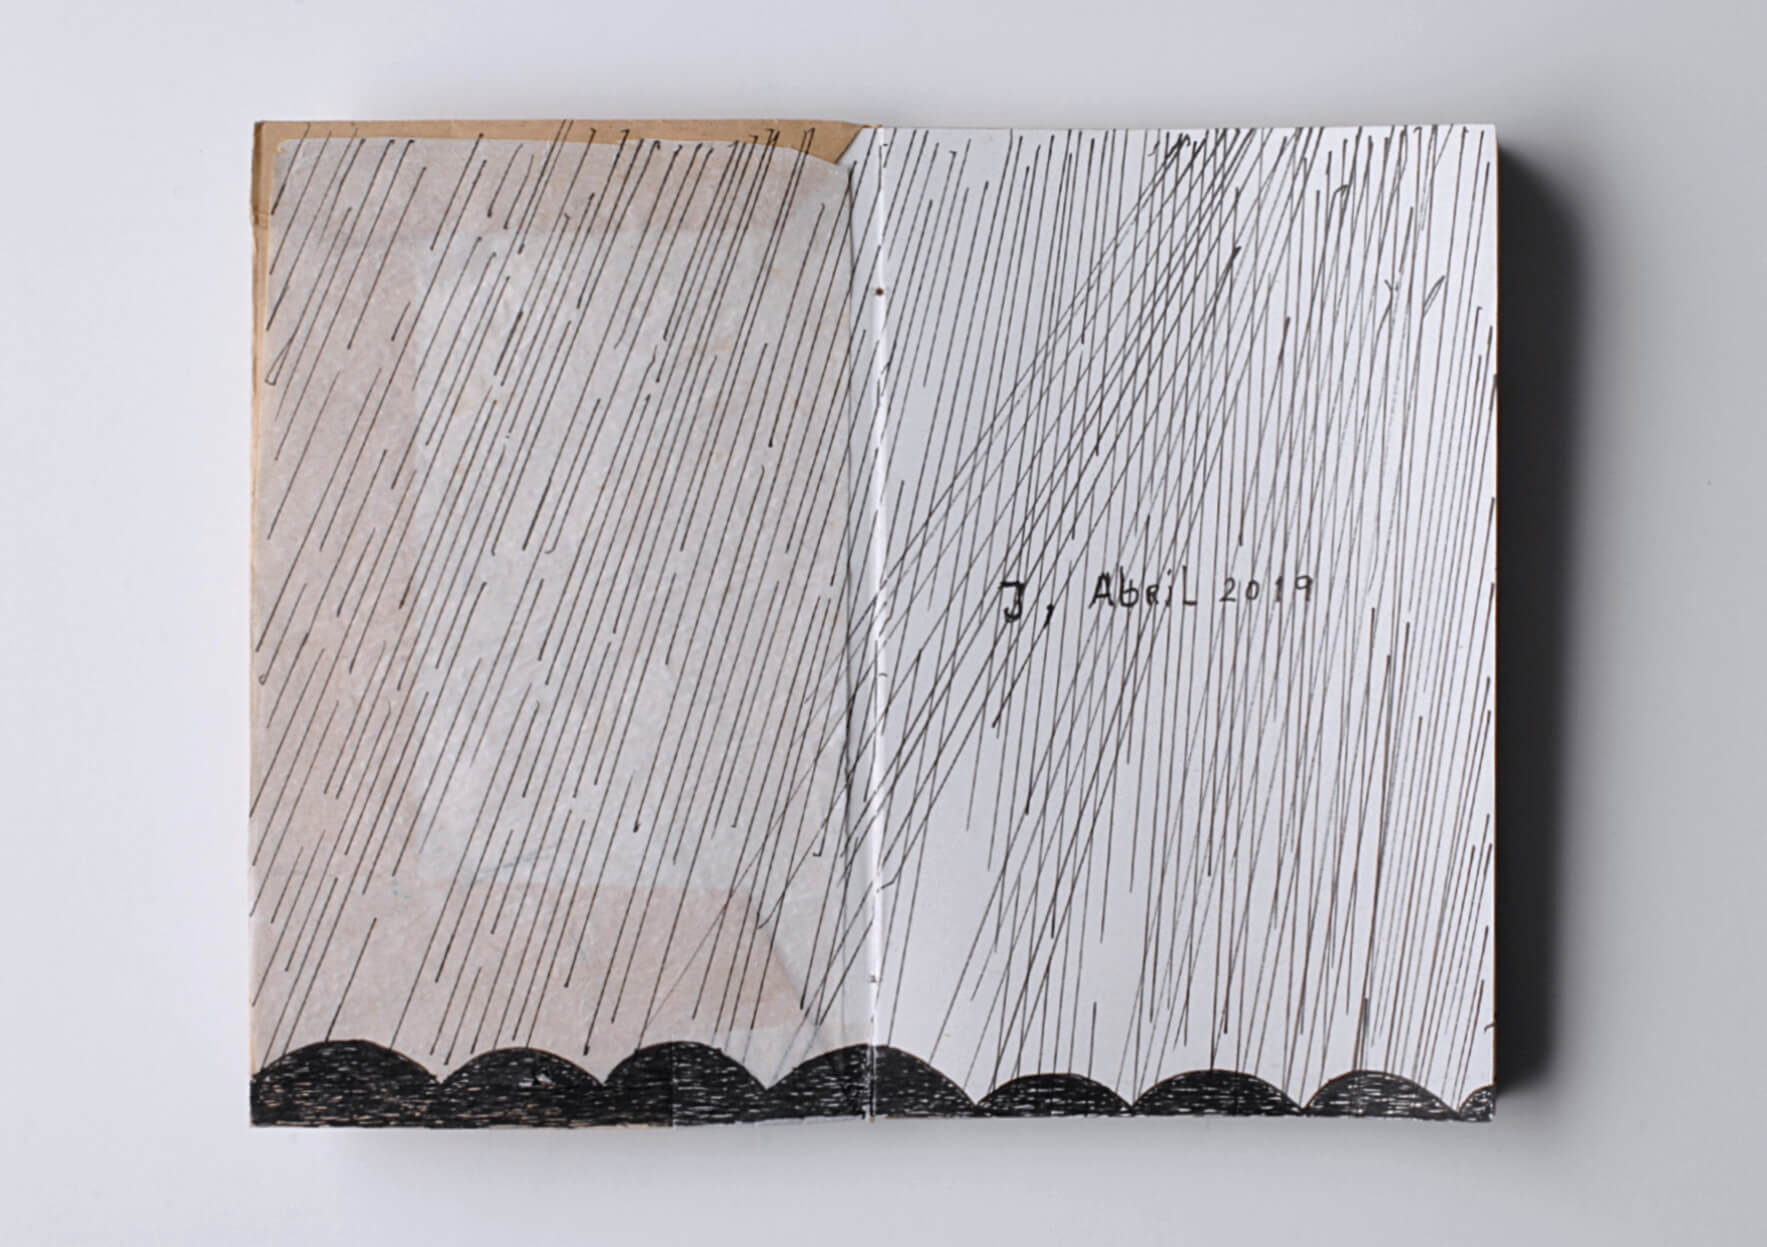 Ana Jotta Fourth, no discovery, 2019 Ink on paper, 9 x 14,5 cm. Unique | Mother | ProjecteSD